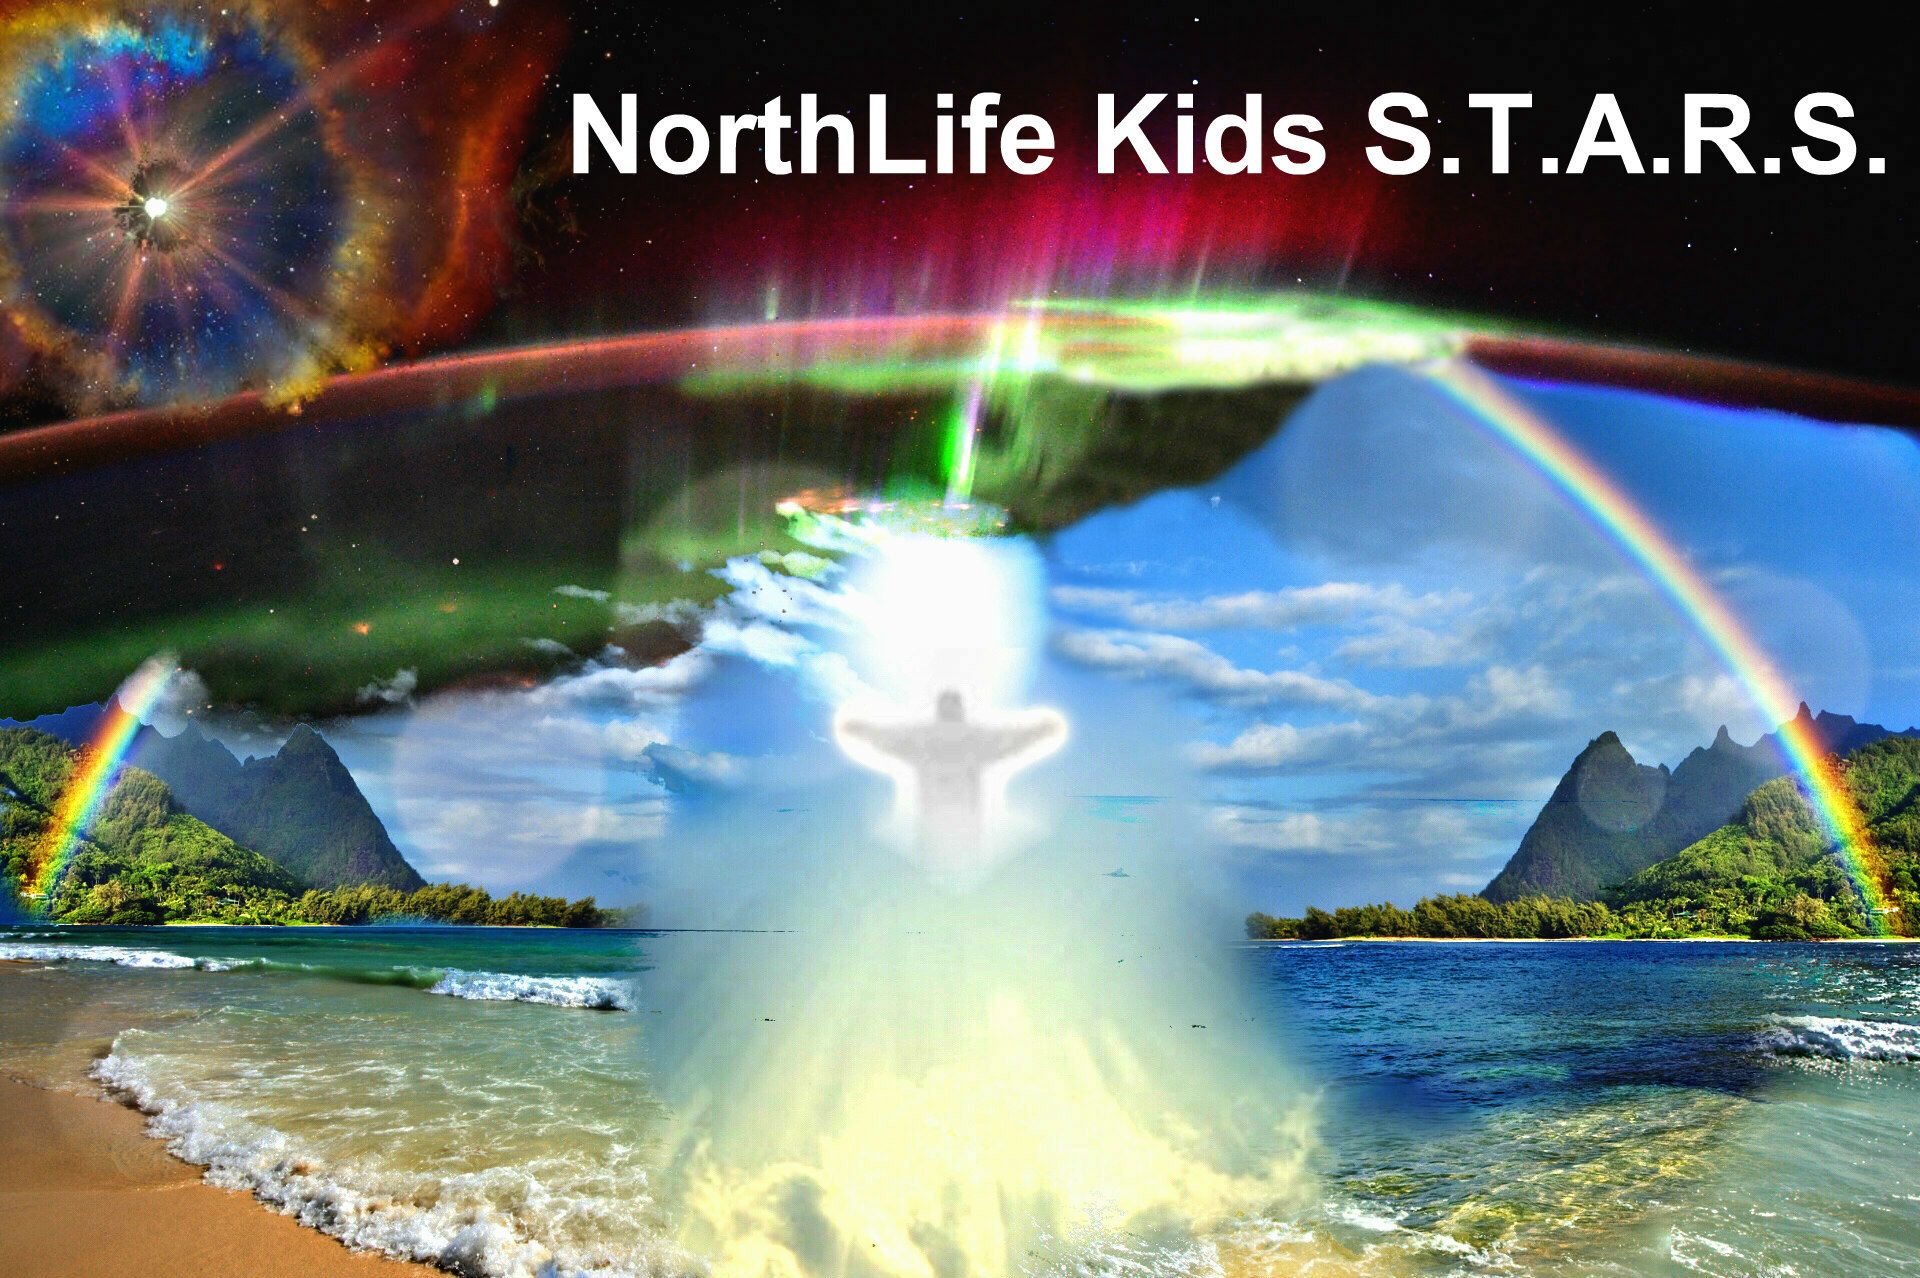 NorthLife Kids S.T.A.R.S.